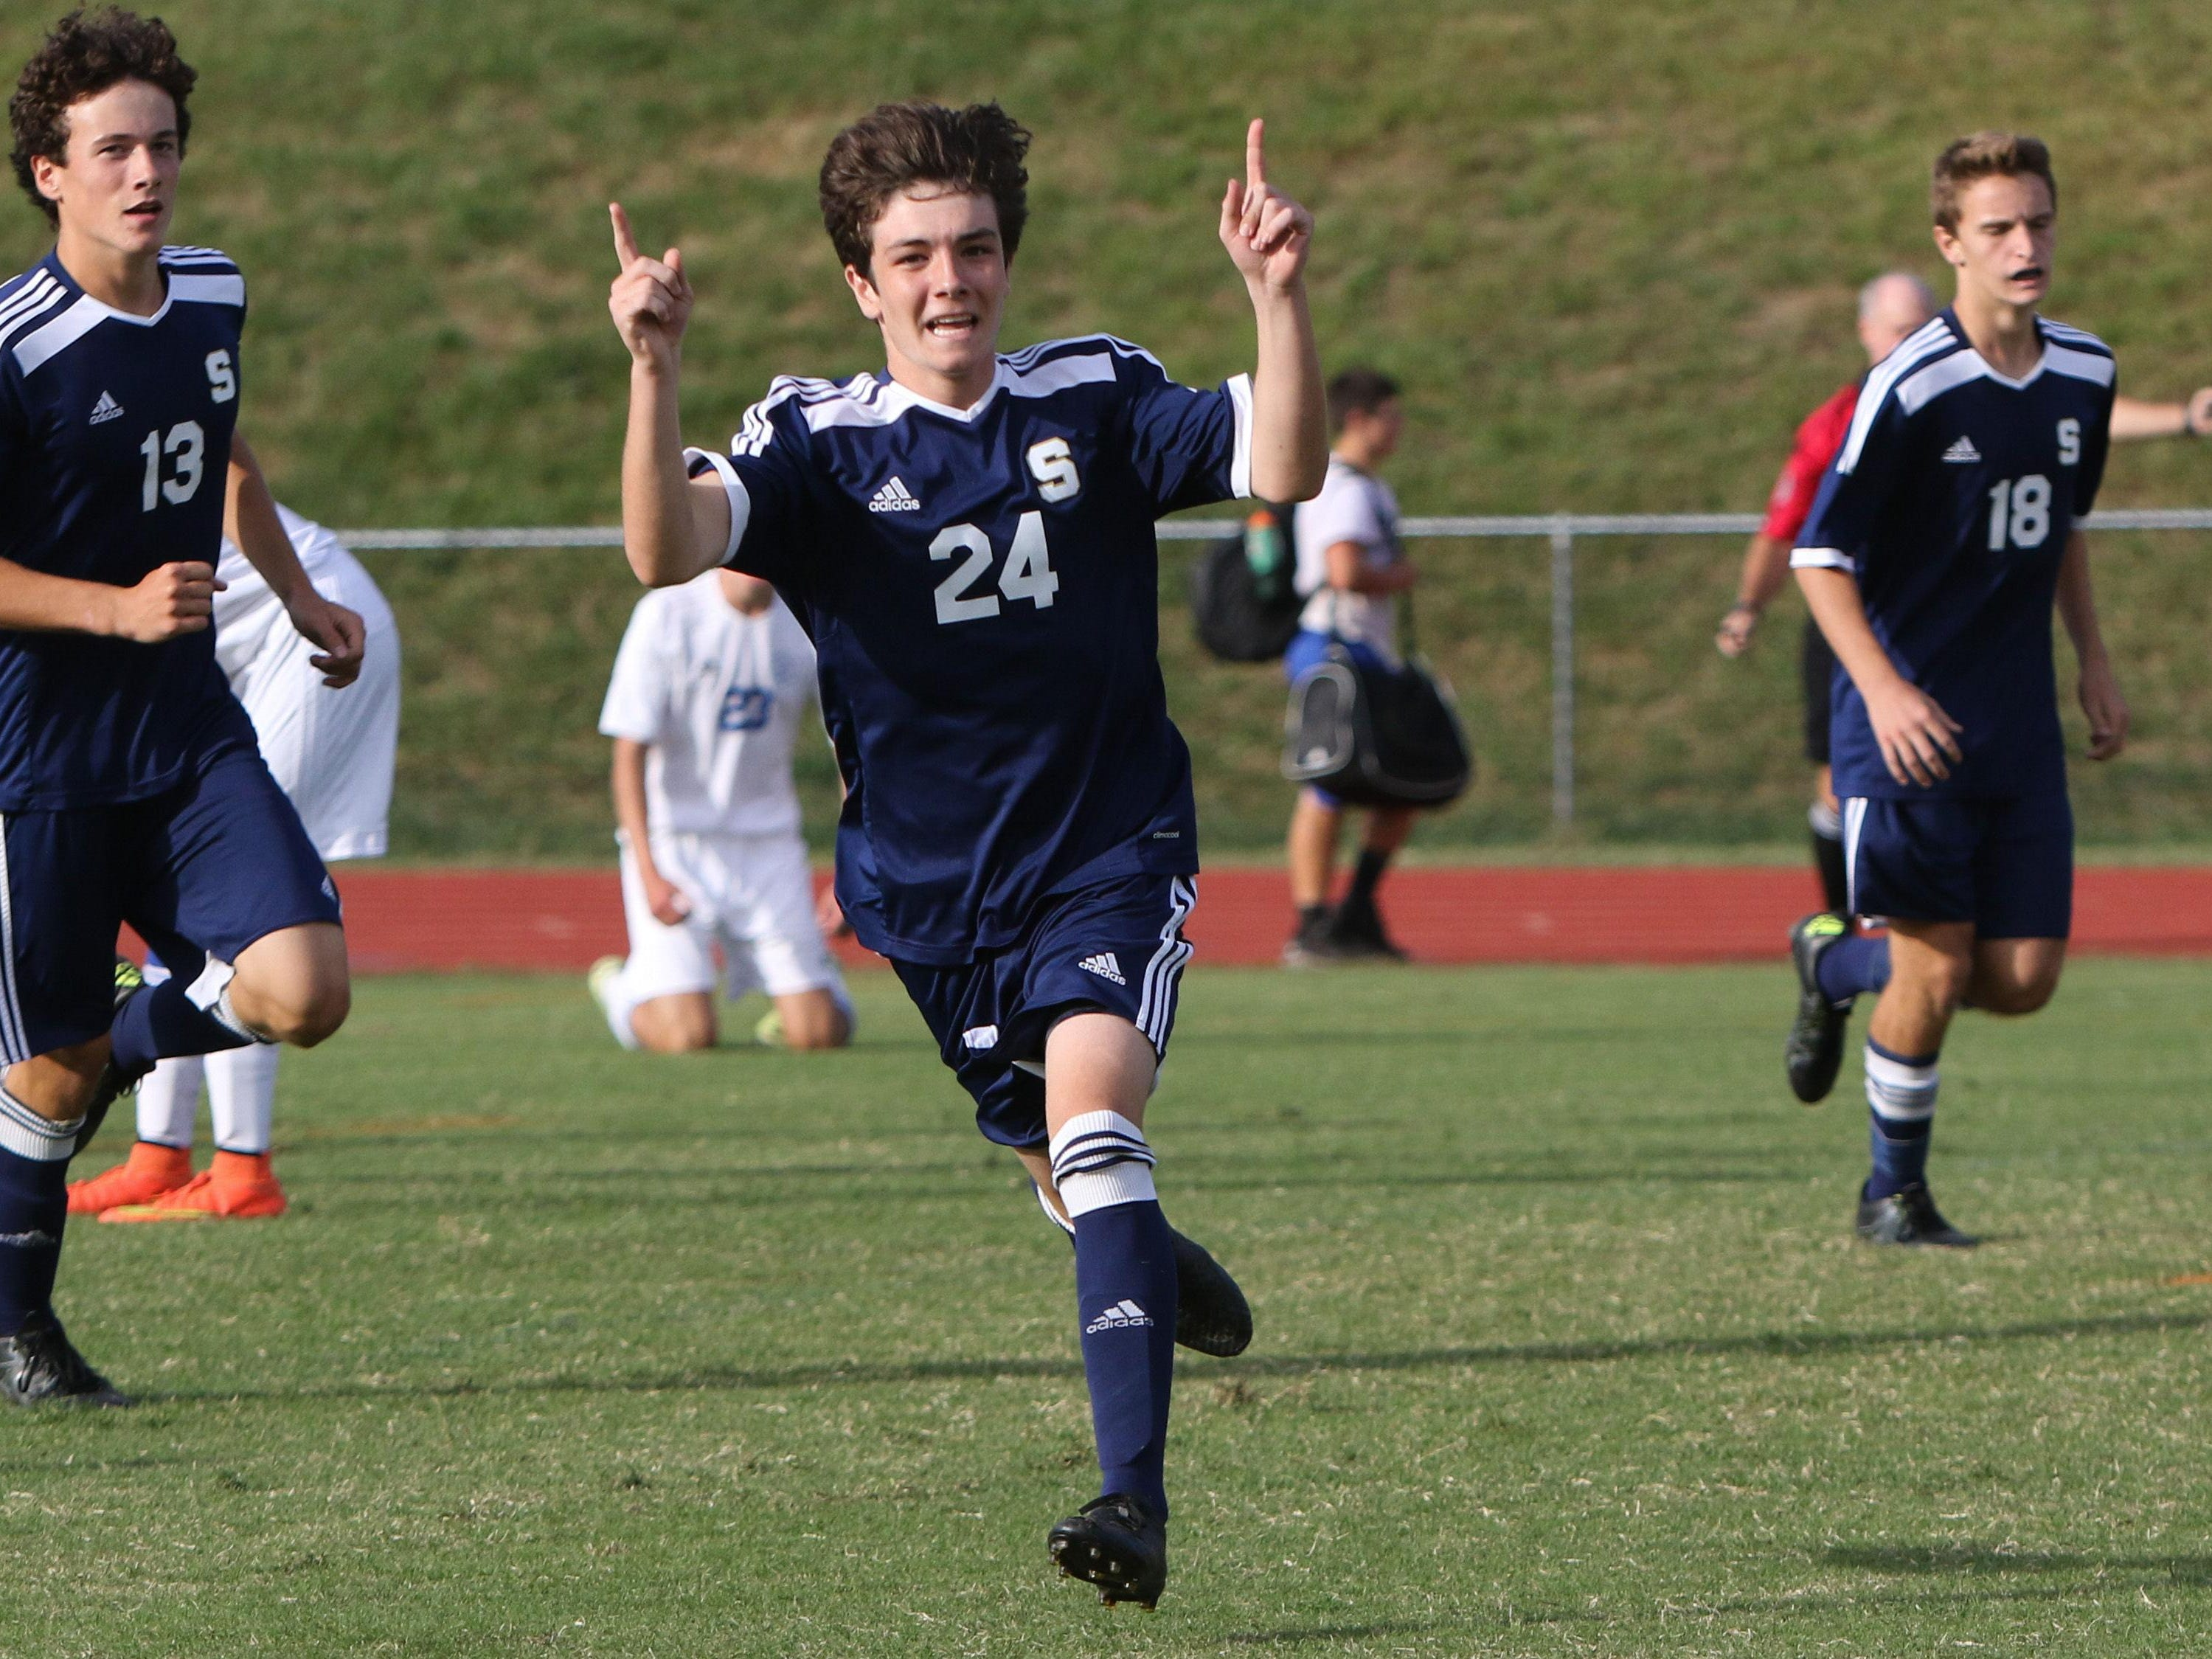 Salesianum's Jack Leonard celebrates after his go-ahead goal in the closing minutes of his team's match with Charter of Wilmington. The Sallies won 2-1 Thursday at Charter.